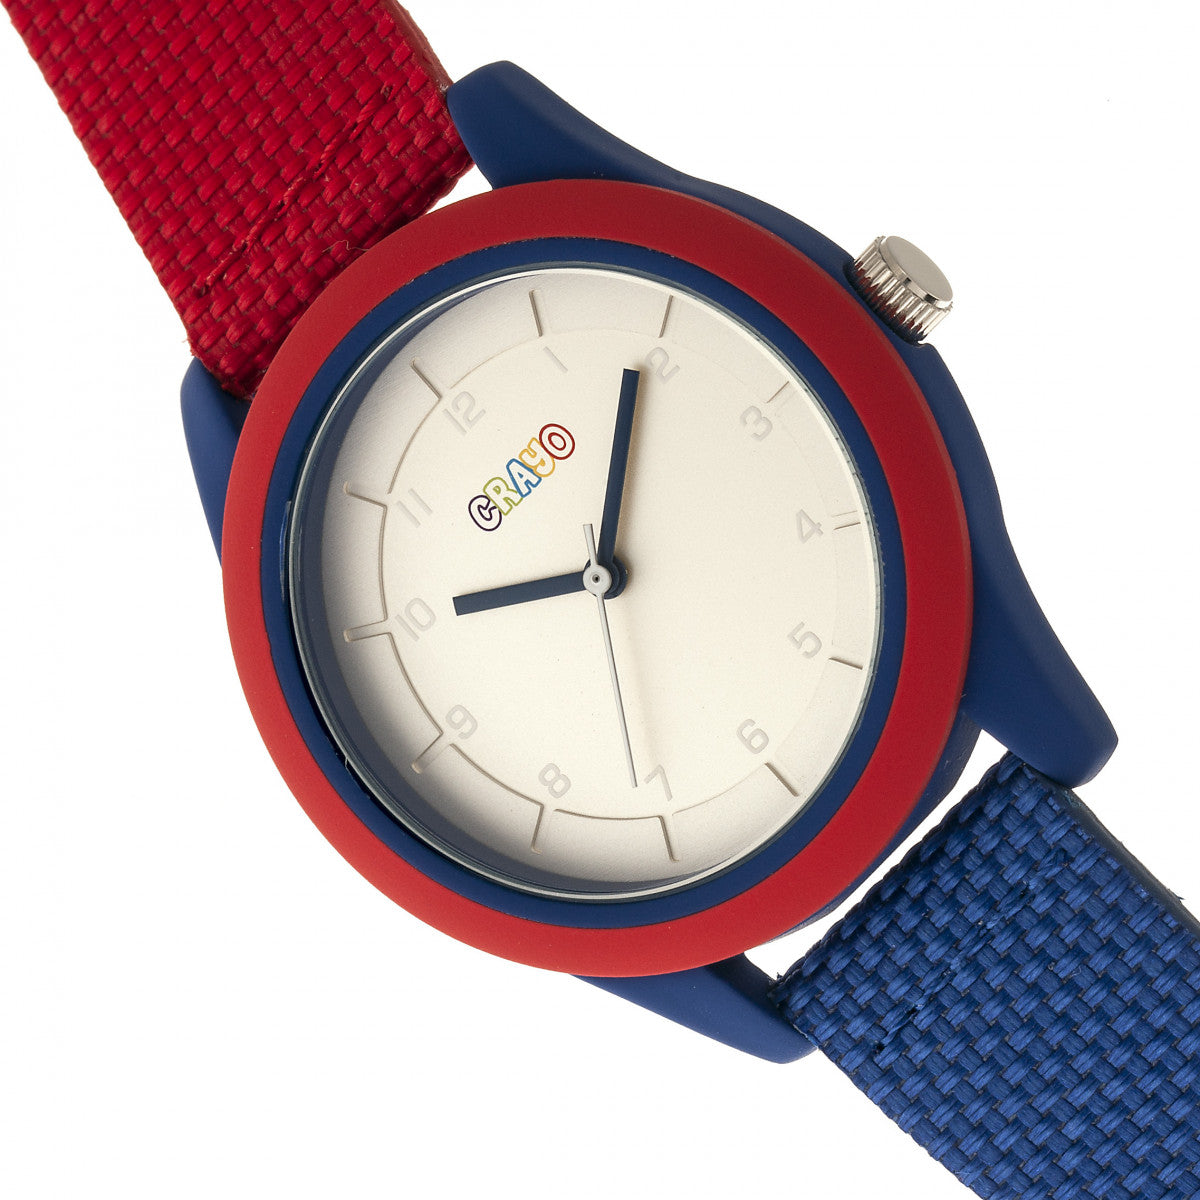 Crayo Pleasant Unisex Watch - Red/Blue - CRACR3901